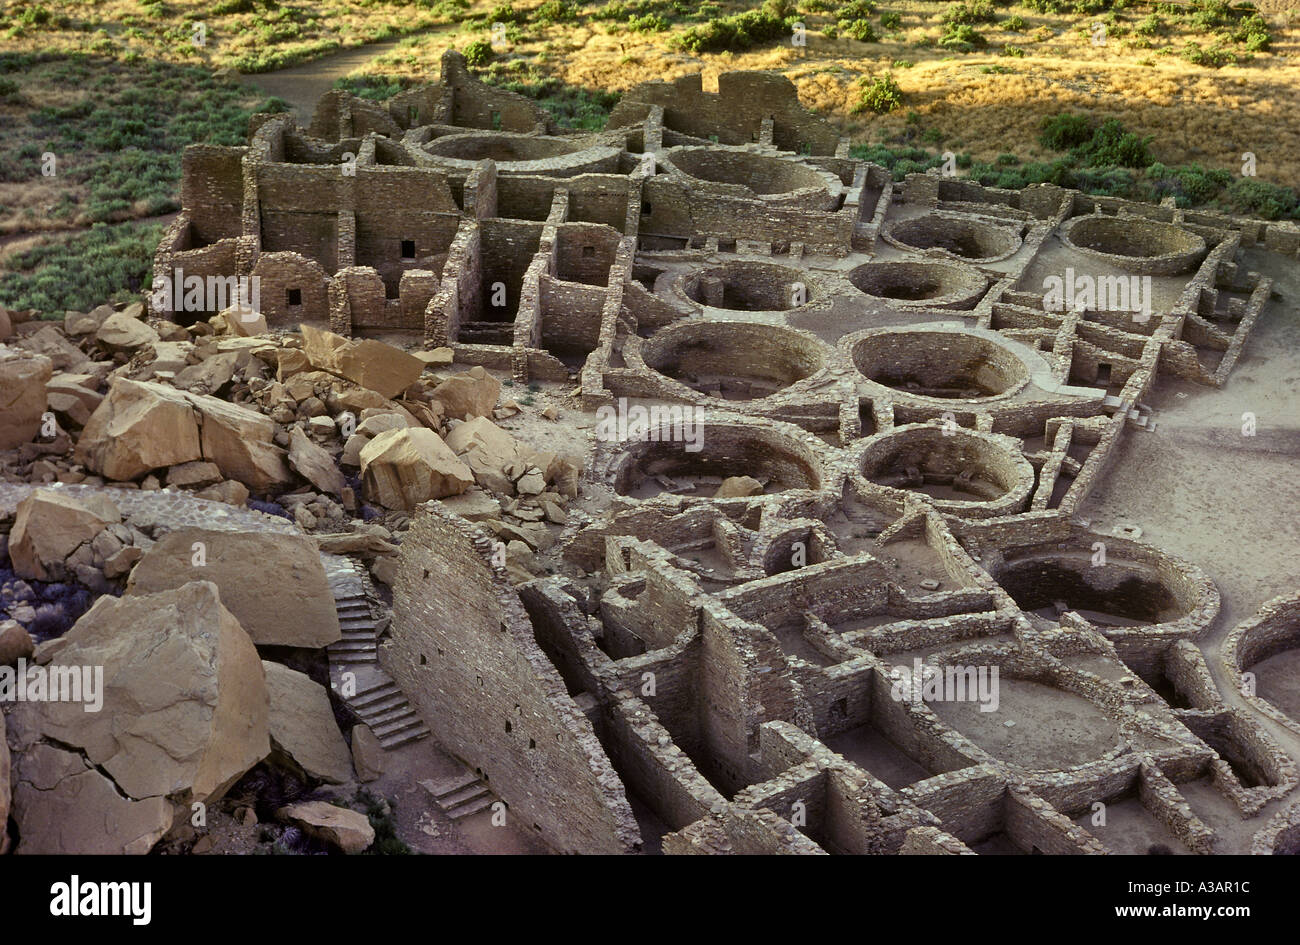 Pueblo Bonito Anasazi Indian Ruins Chaco Canyon National Historical Park New Mexico - Stock Image